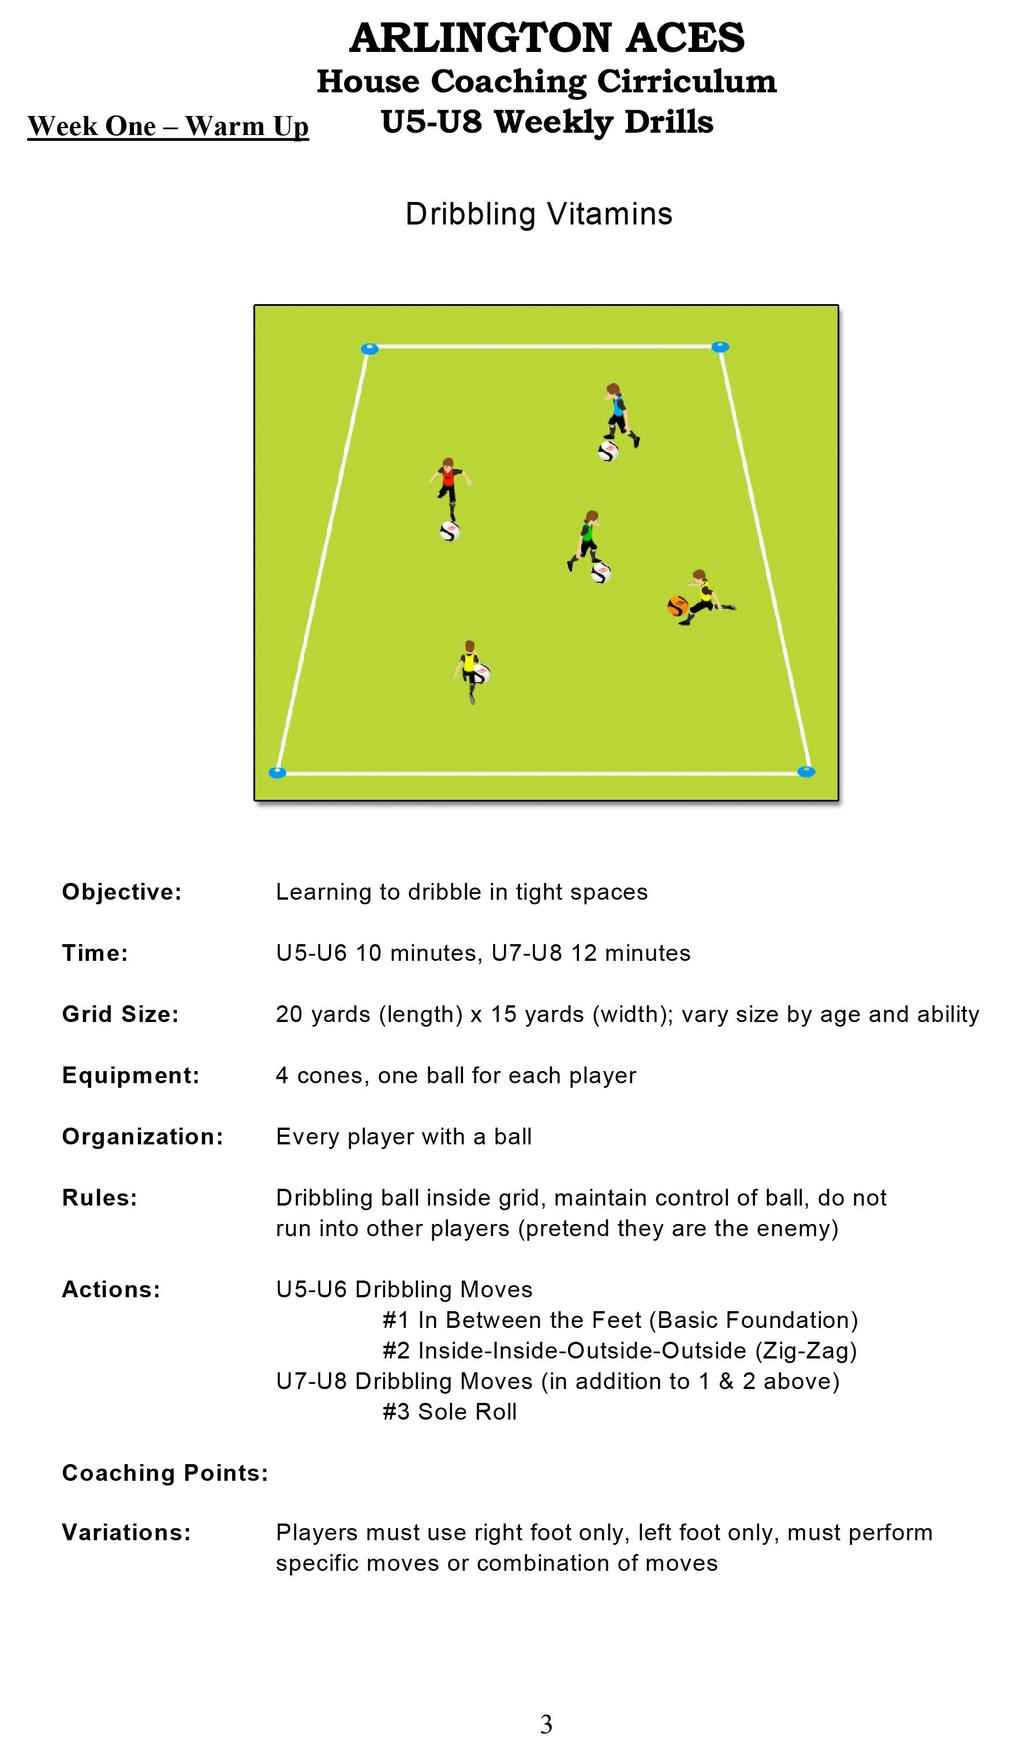 Week Three Warm Up Dribbling Marbles ACTIONS Learning to dribble in tight spaces 20 yards (length) x 15 yards (width); vary size by age and ability 4 cones, one ball for each player Every player with